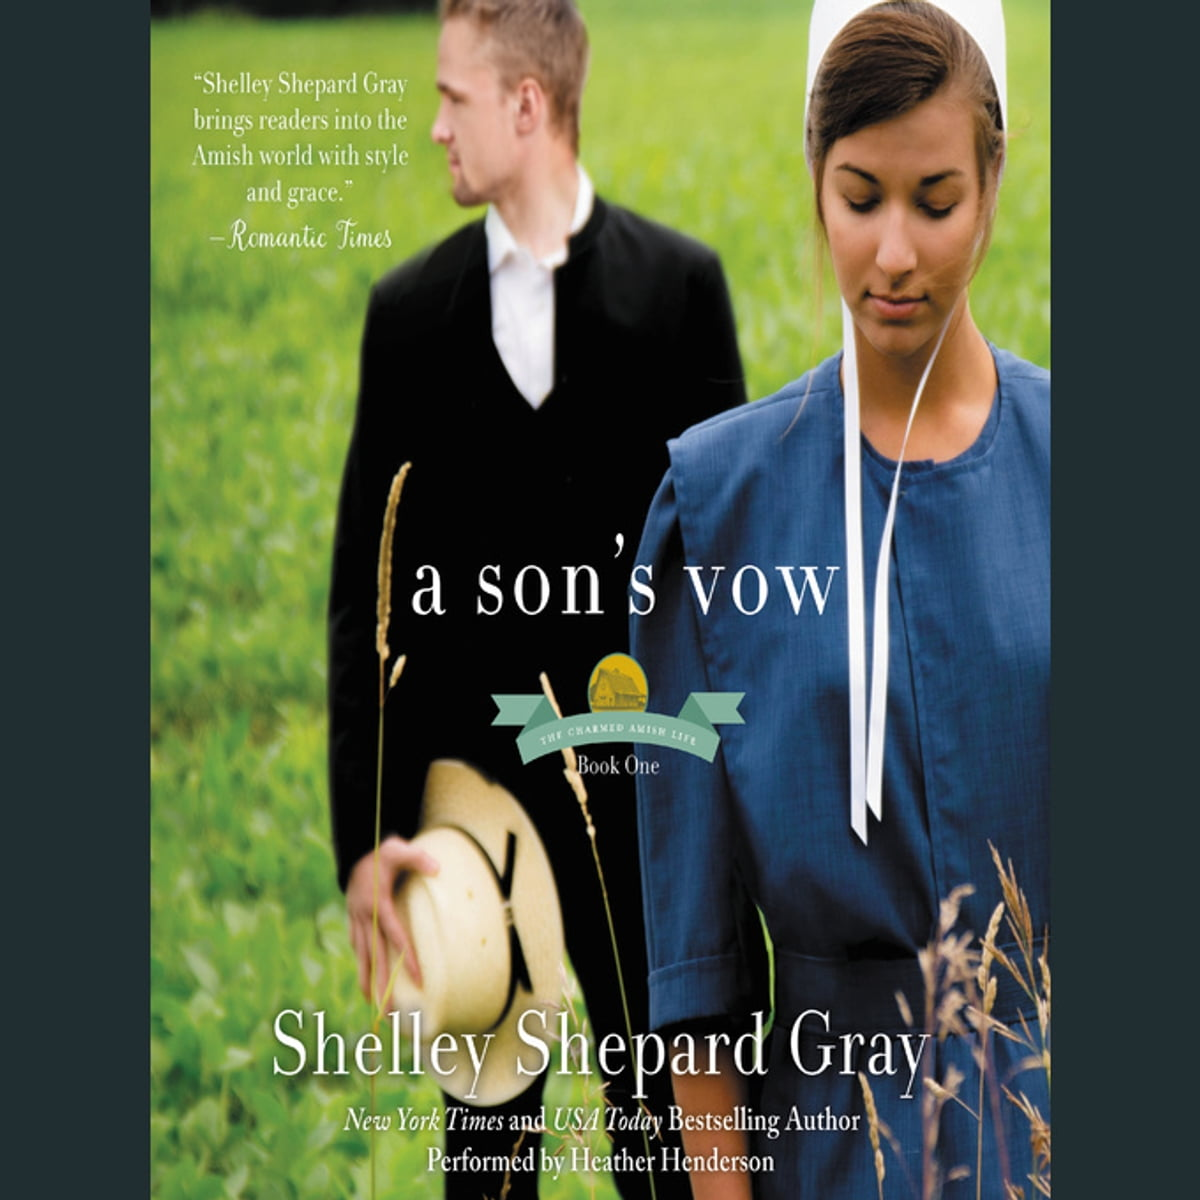 A Son's Vow Audiobook By Shelley Shepard Gray 9780062444721